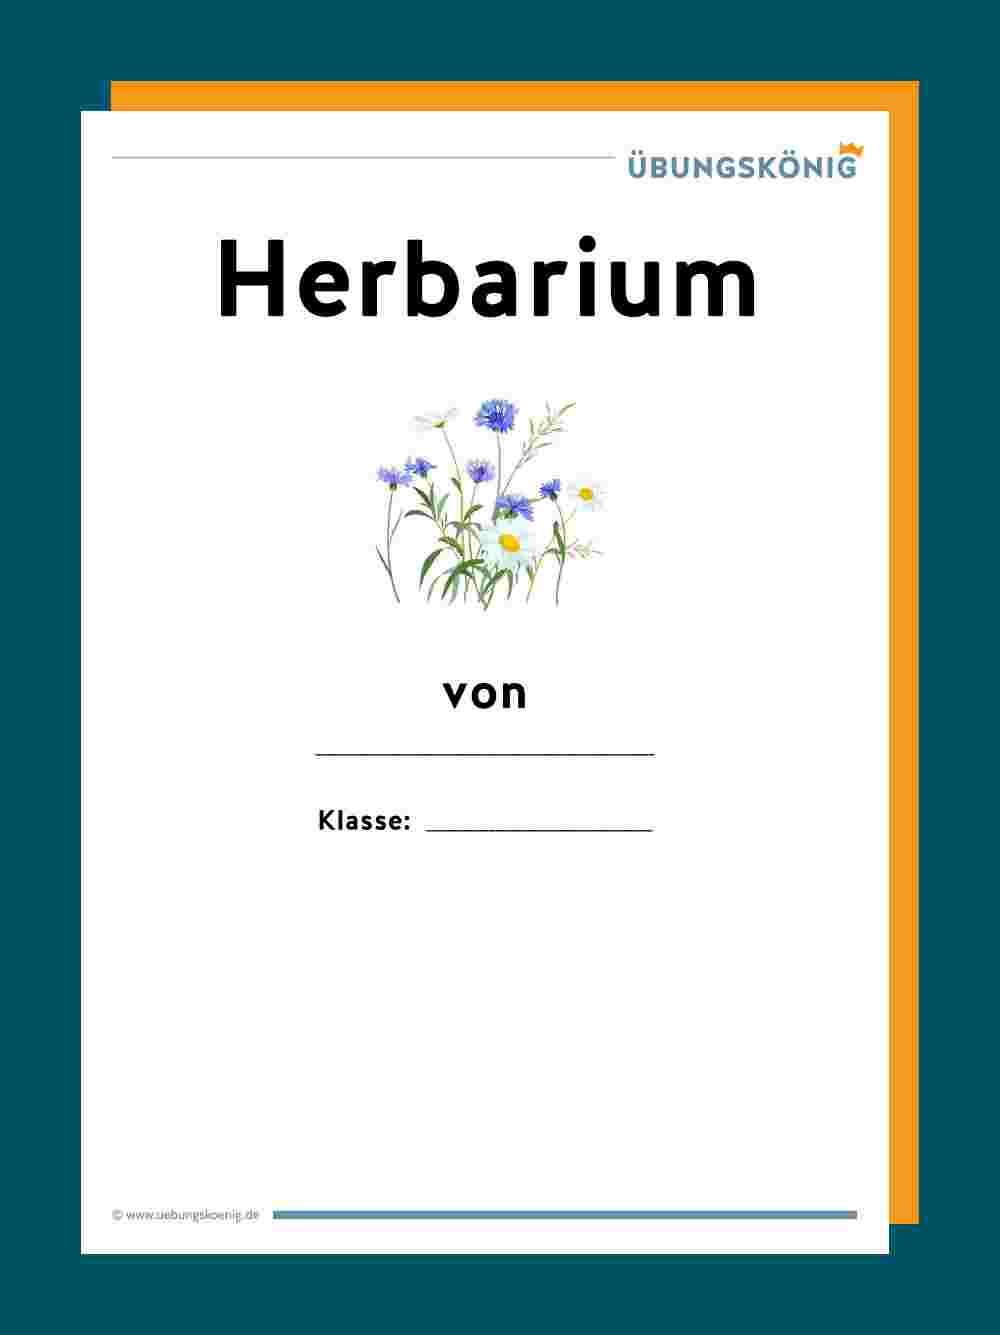 Herbarium Sheet Template Google Search Labels